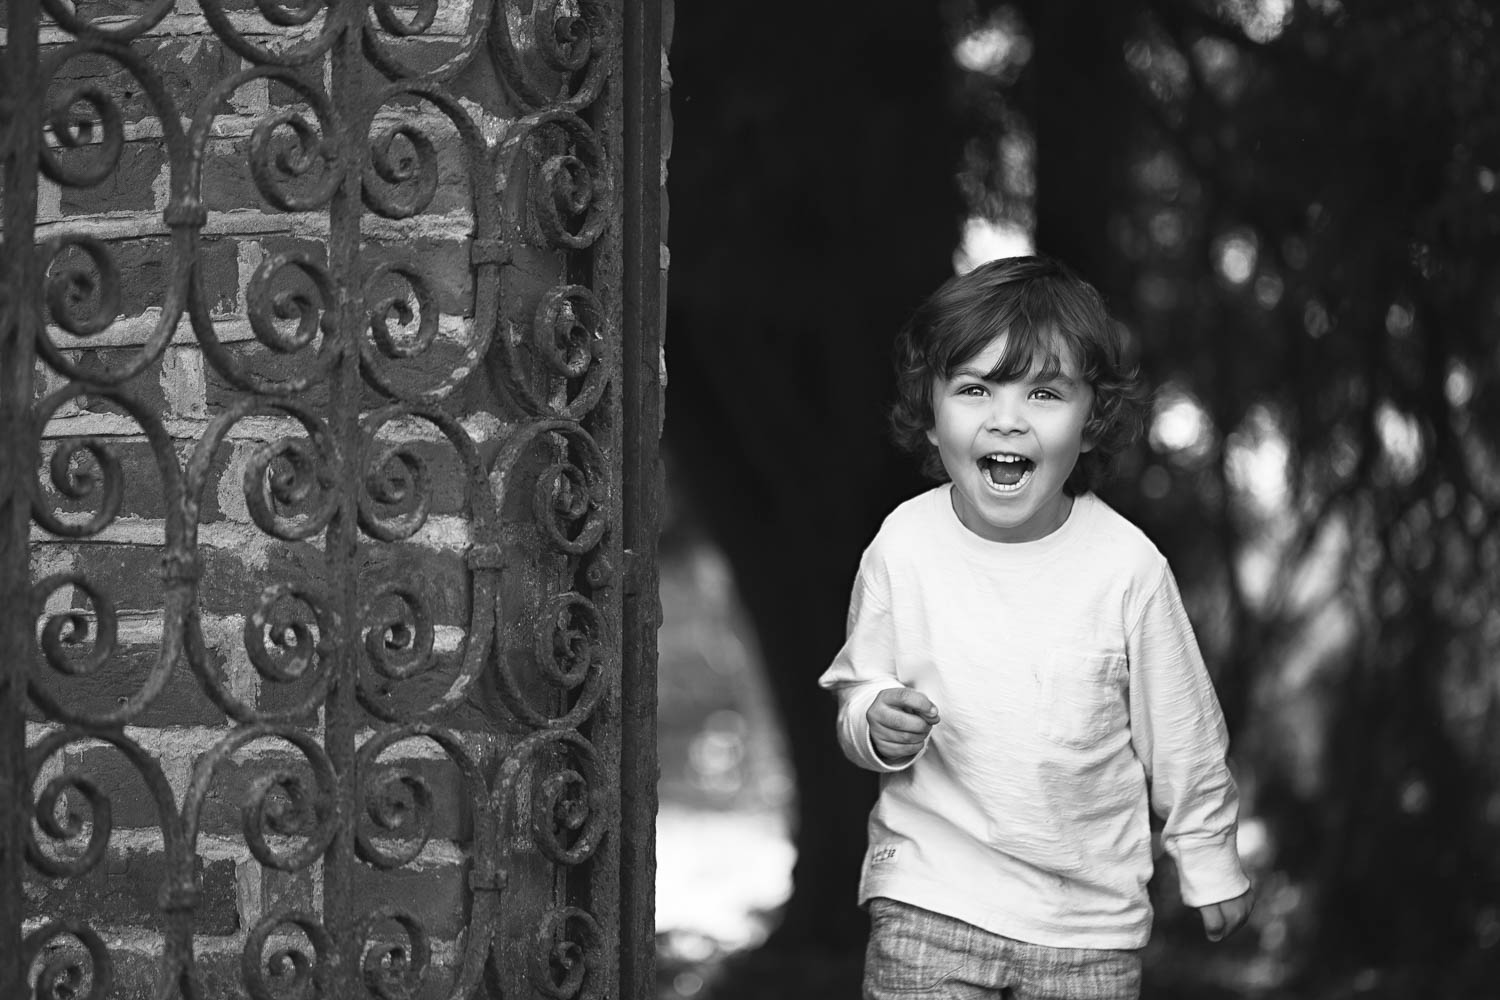 Child natural portraits - photography - B&W.jpg